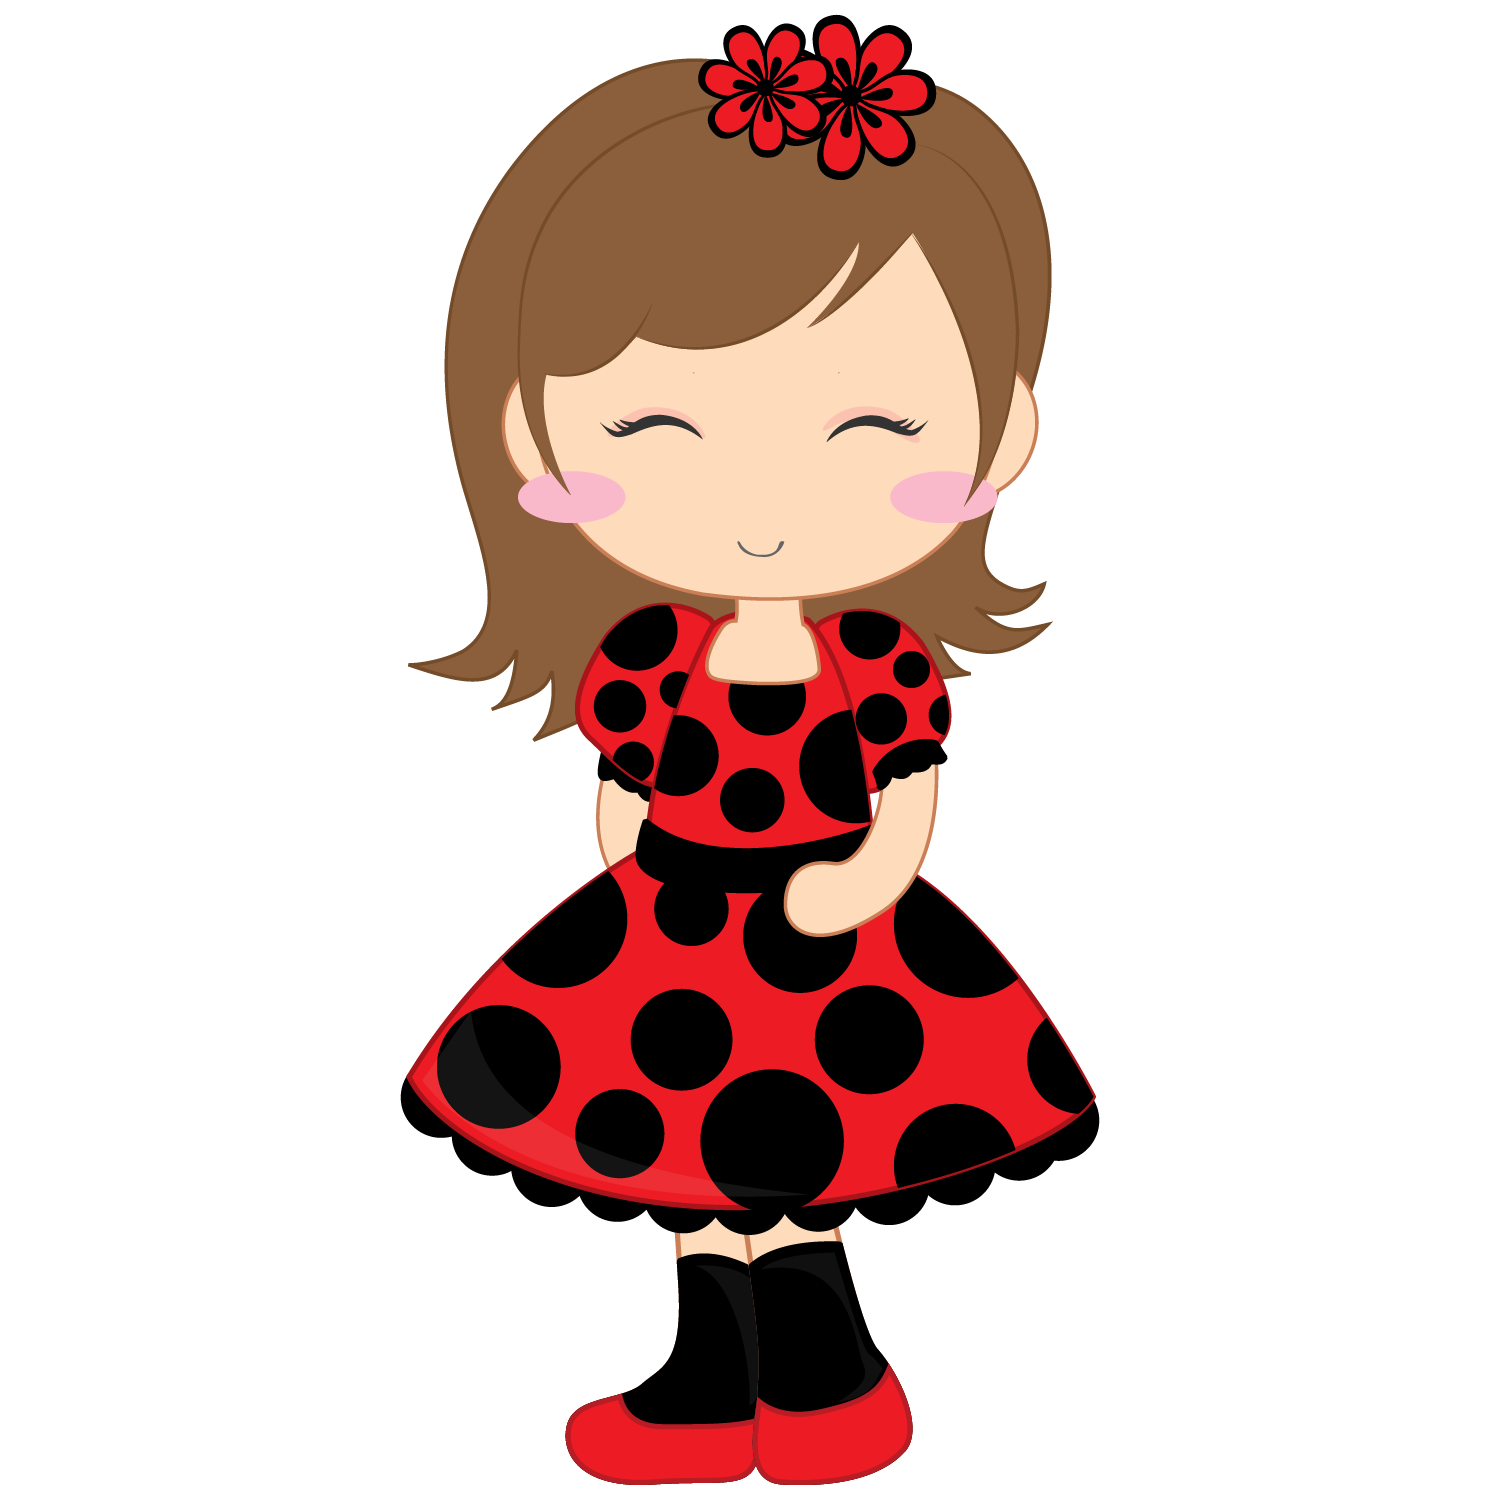 Girl and Ladybugs Clip Art. | Oh My Fiesta For Ladies!